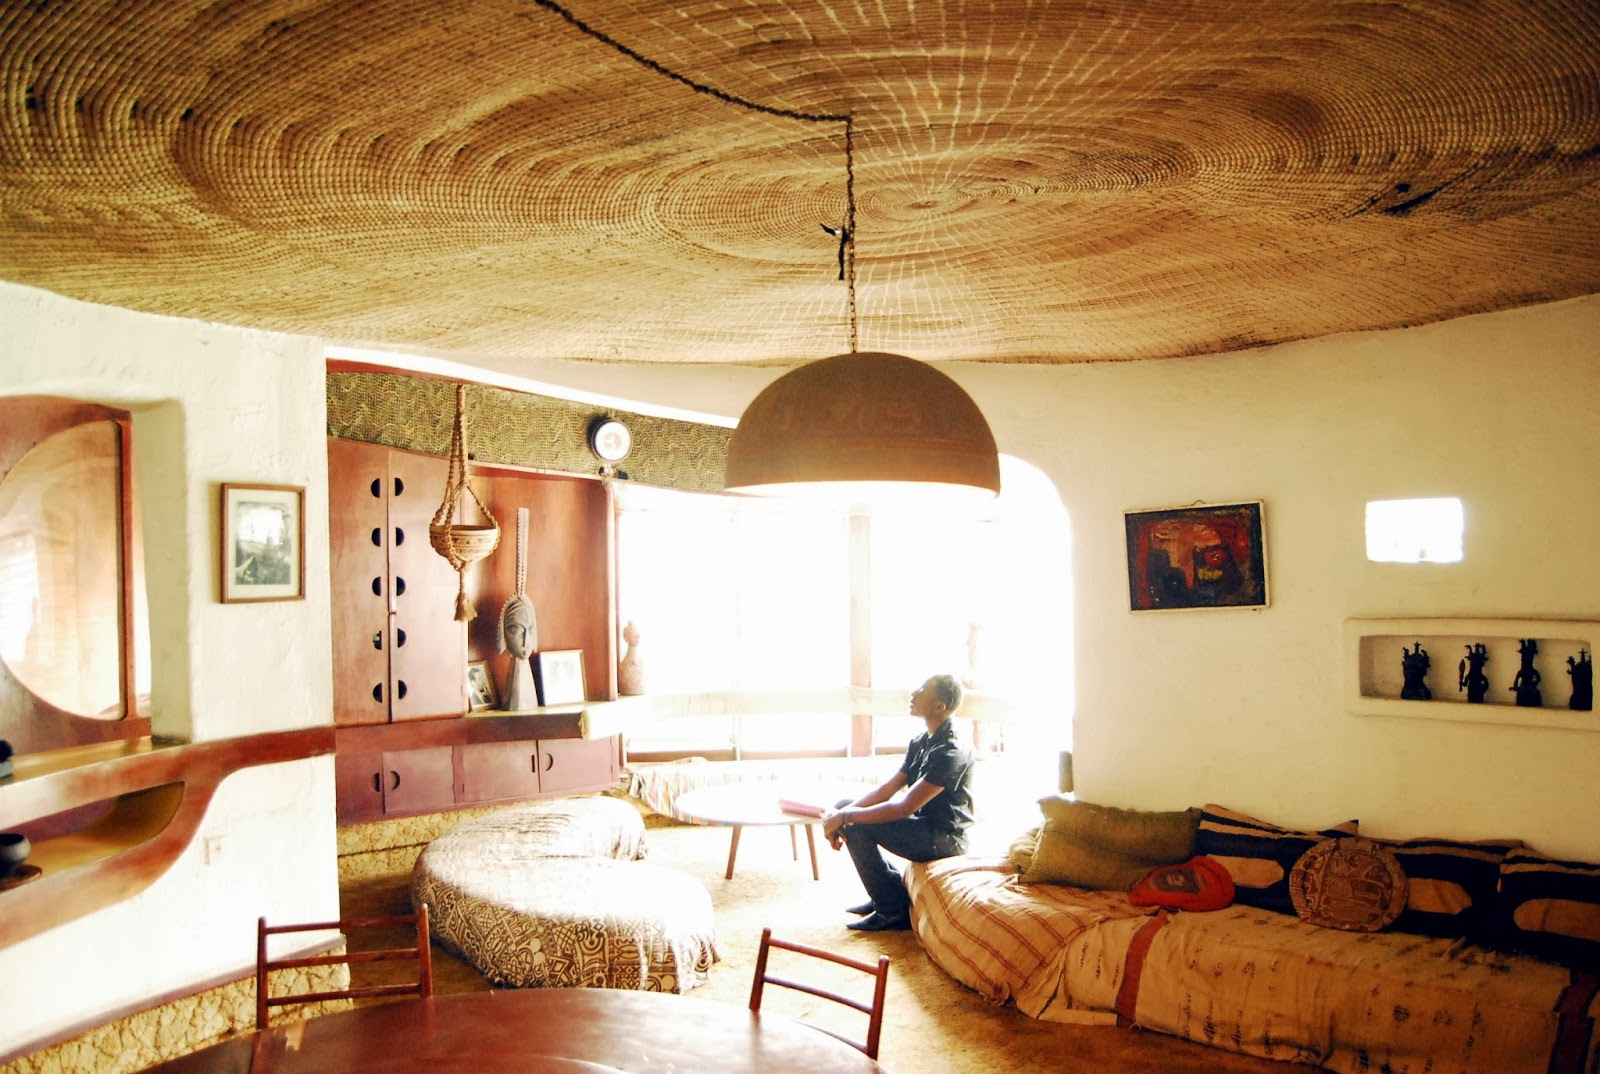 Architecture in Africa, African modernist interior